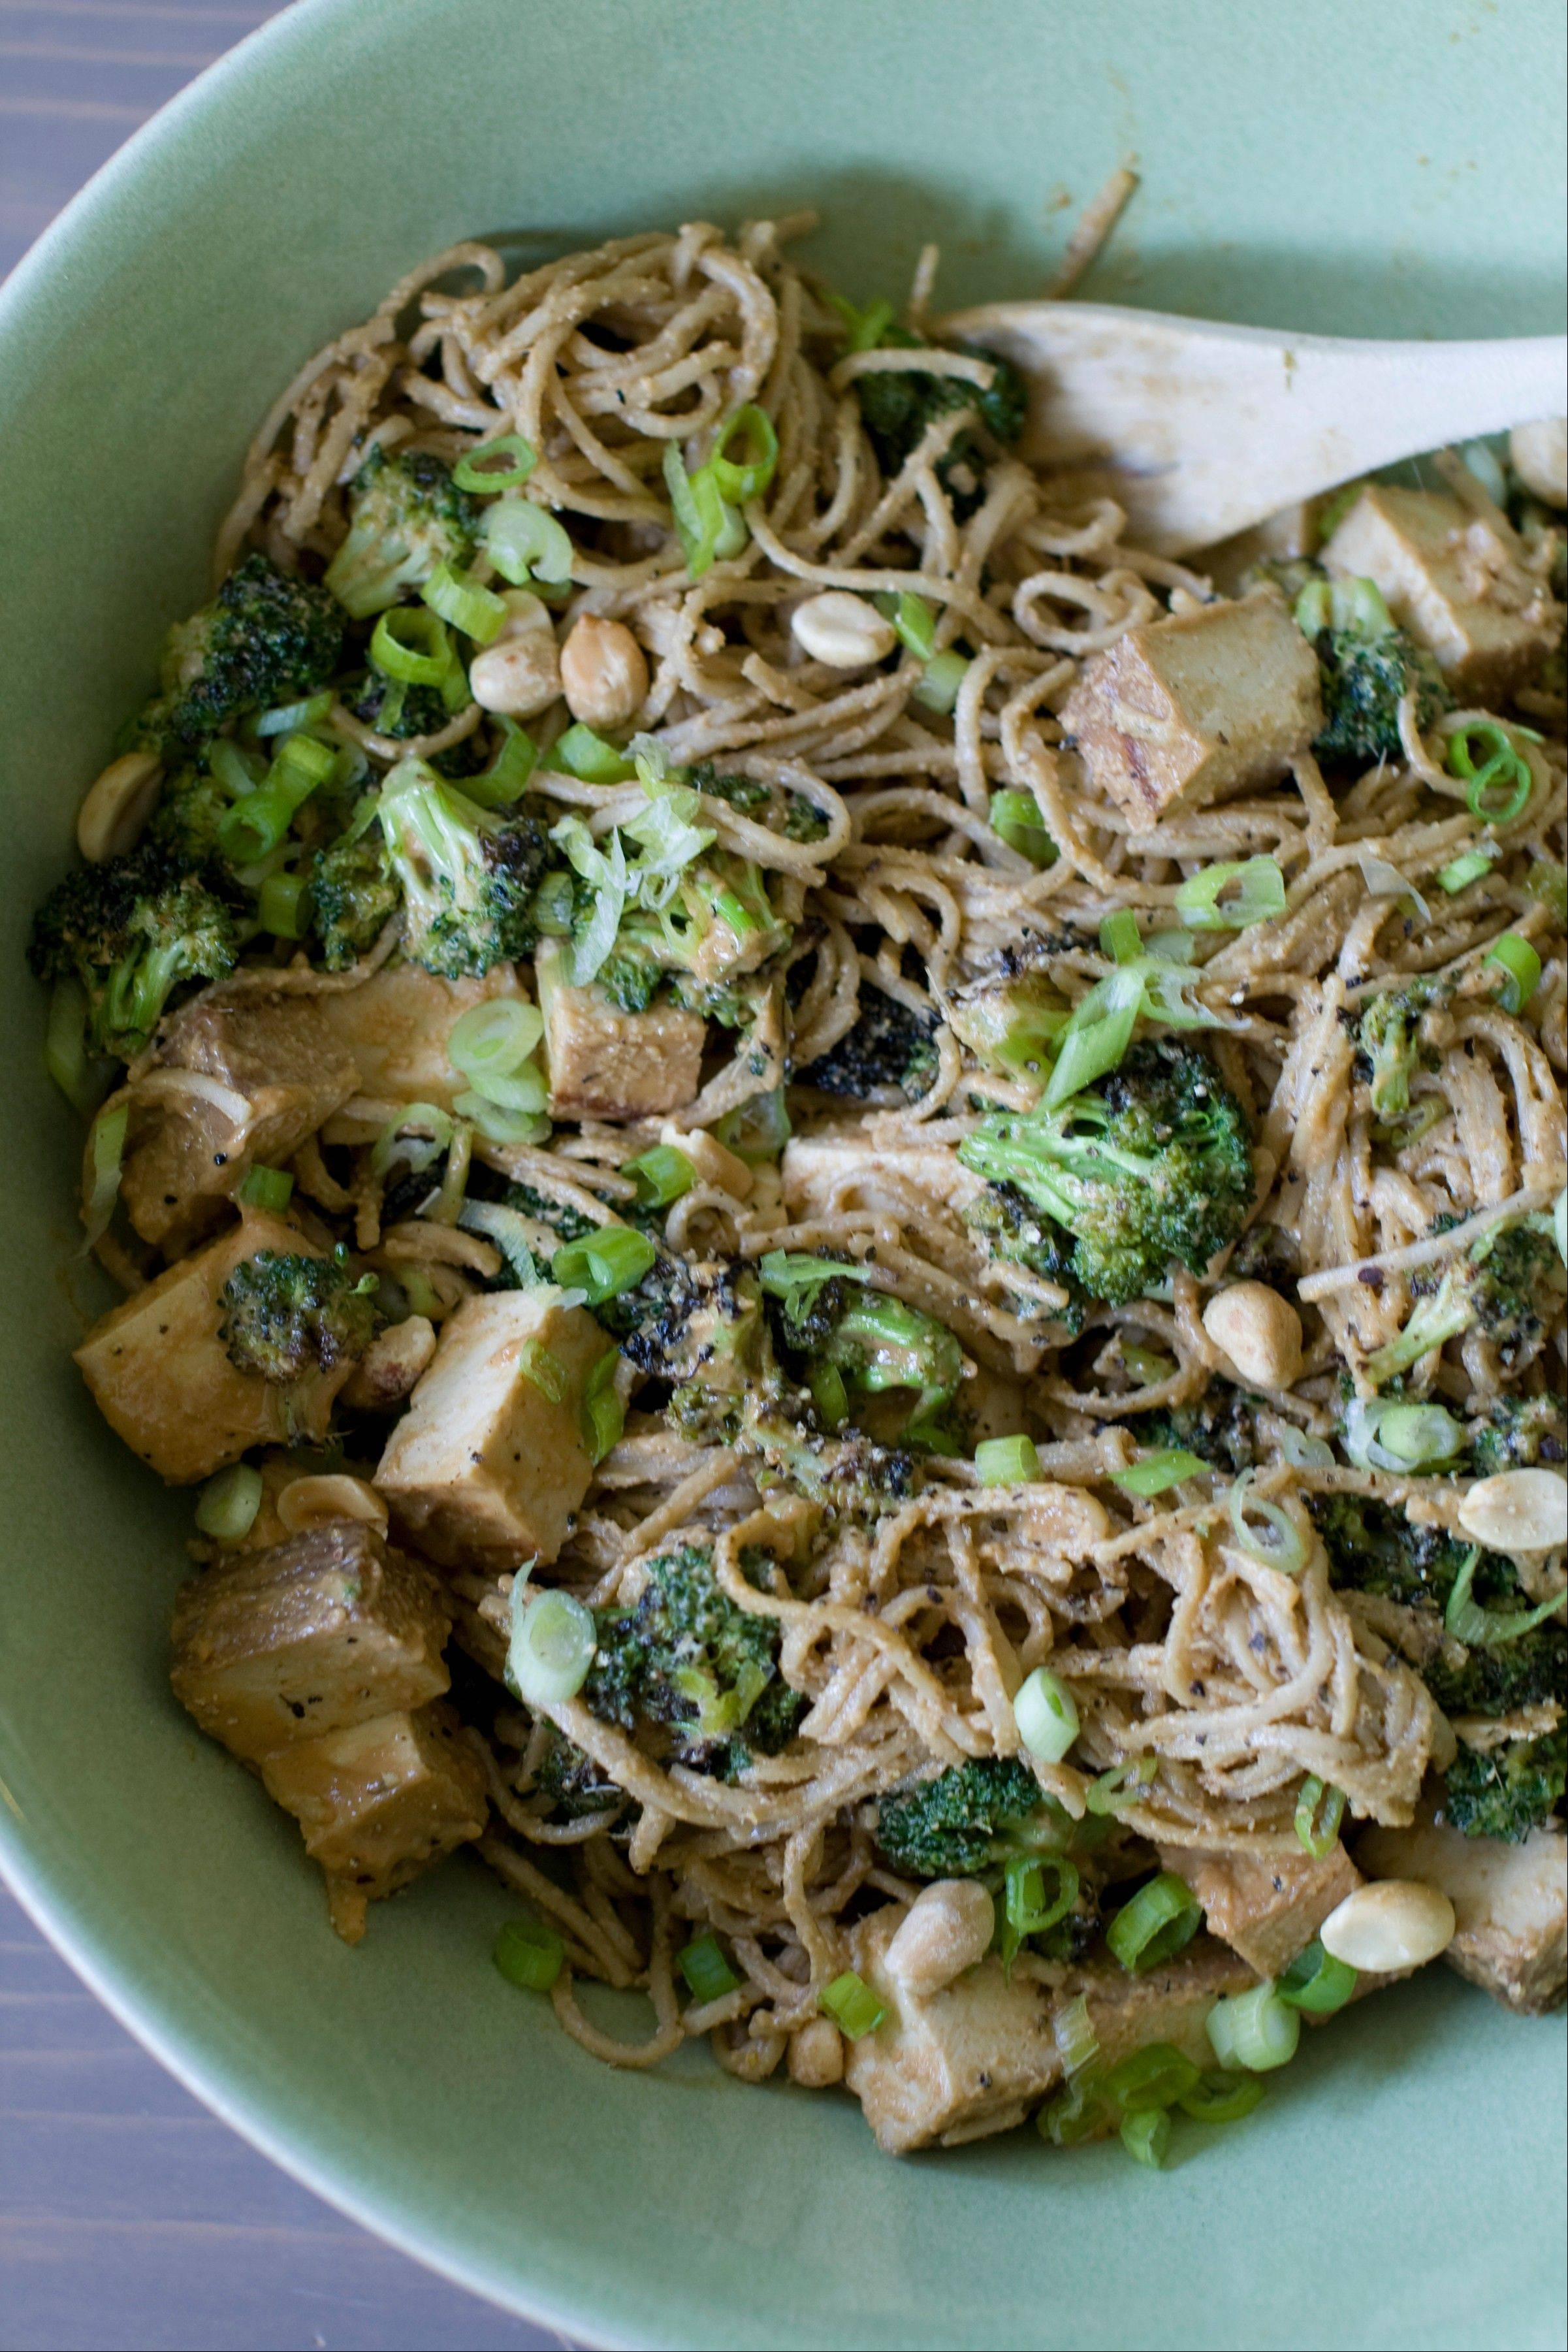 Grilling tofu makes for a delicious spicy peanut noodle salad.